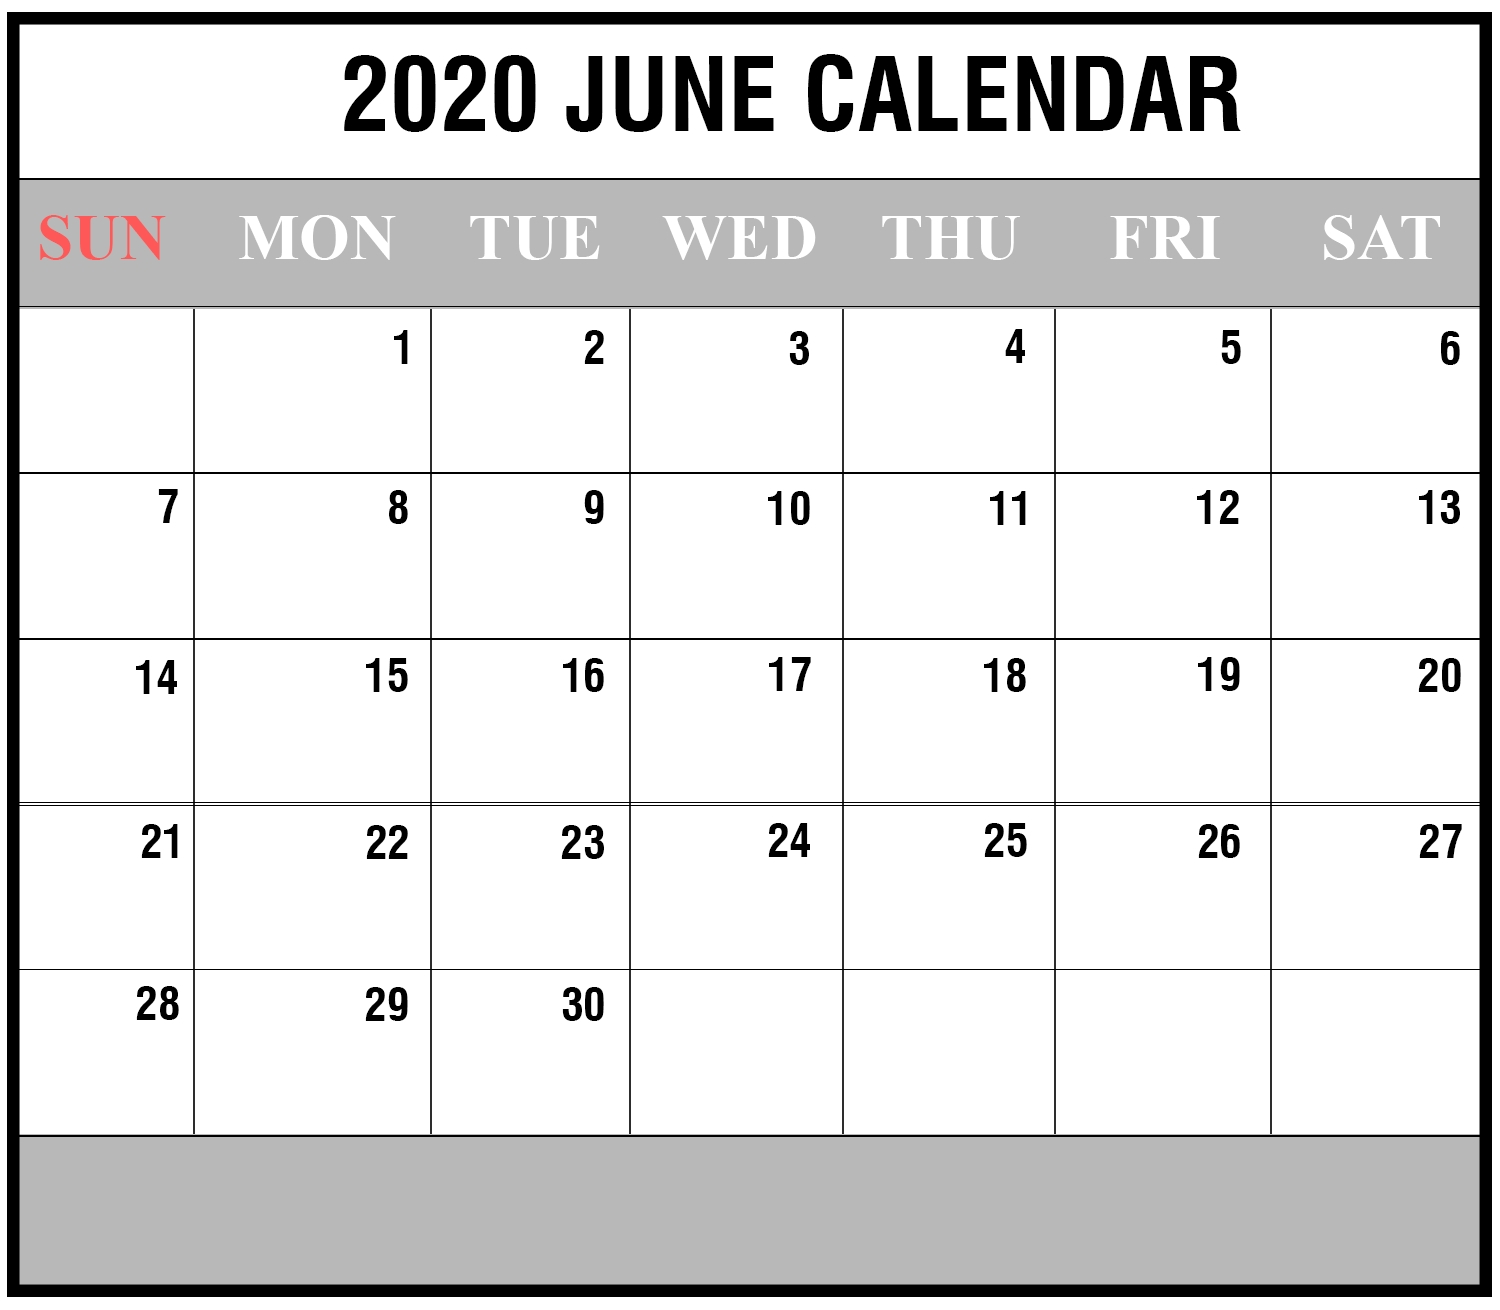 Free Printable Calendar July 2019 June 2020 - 20 Free-Blank 2020-20 Calendar Printable